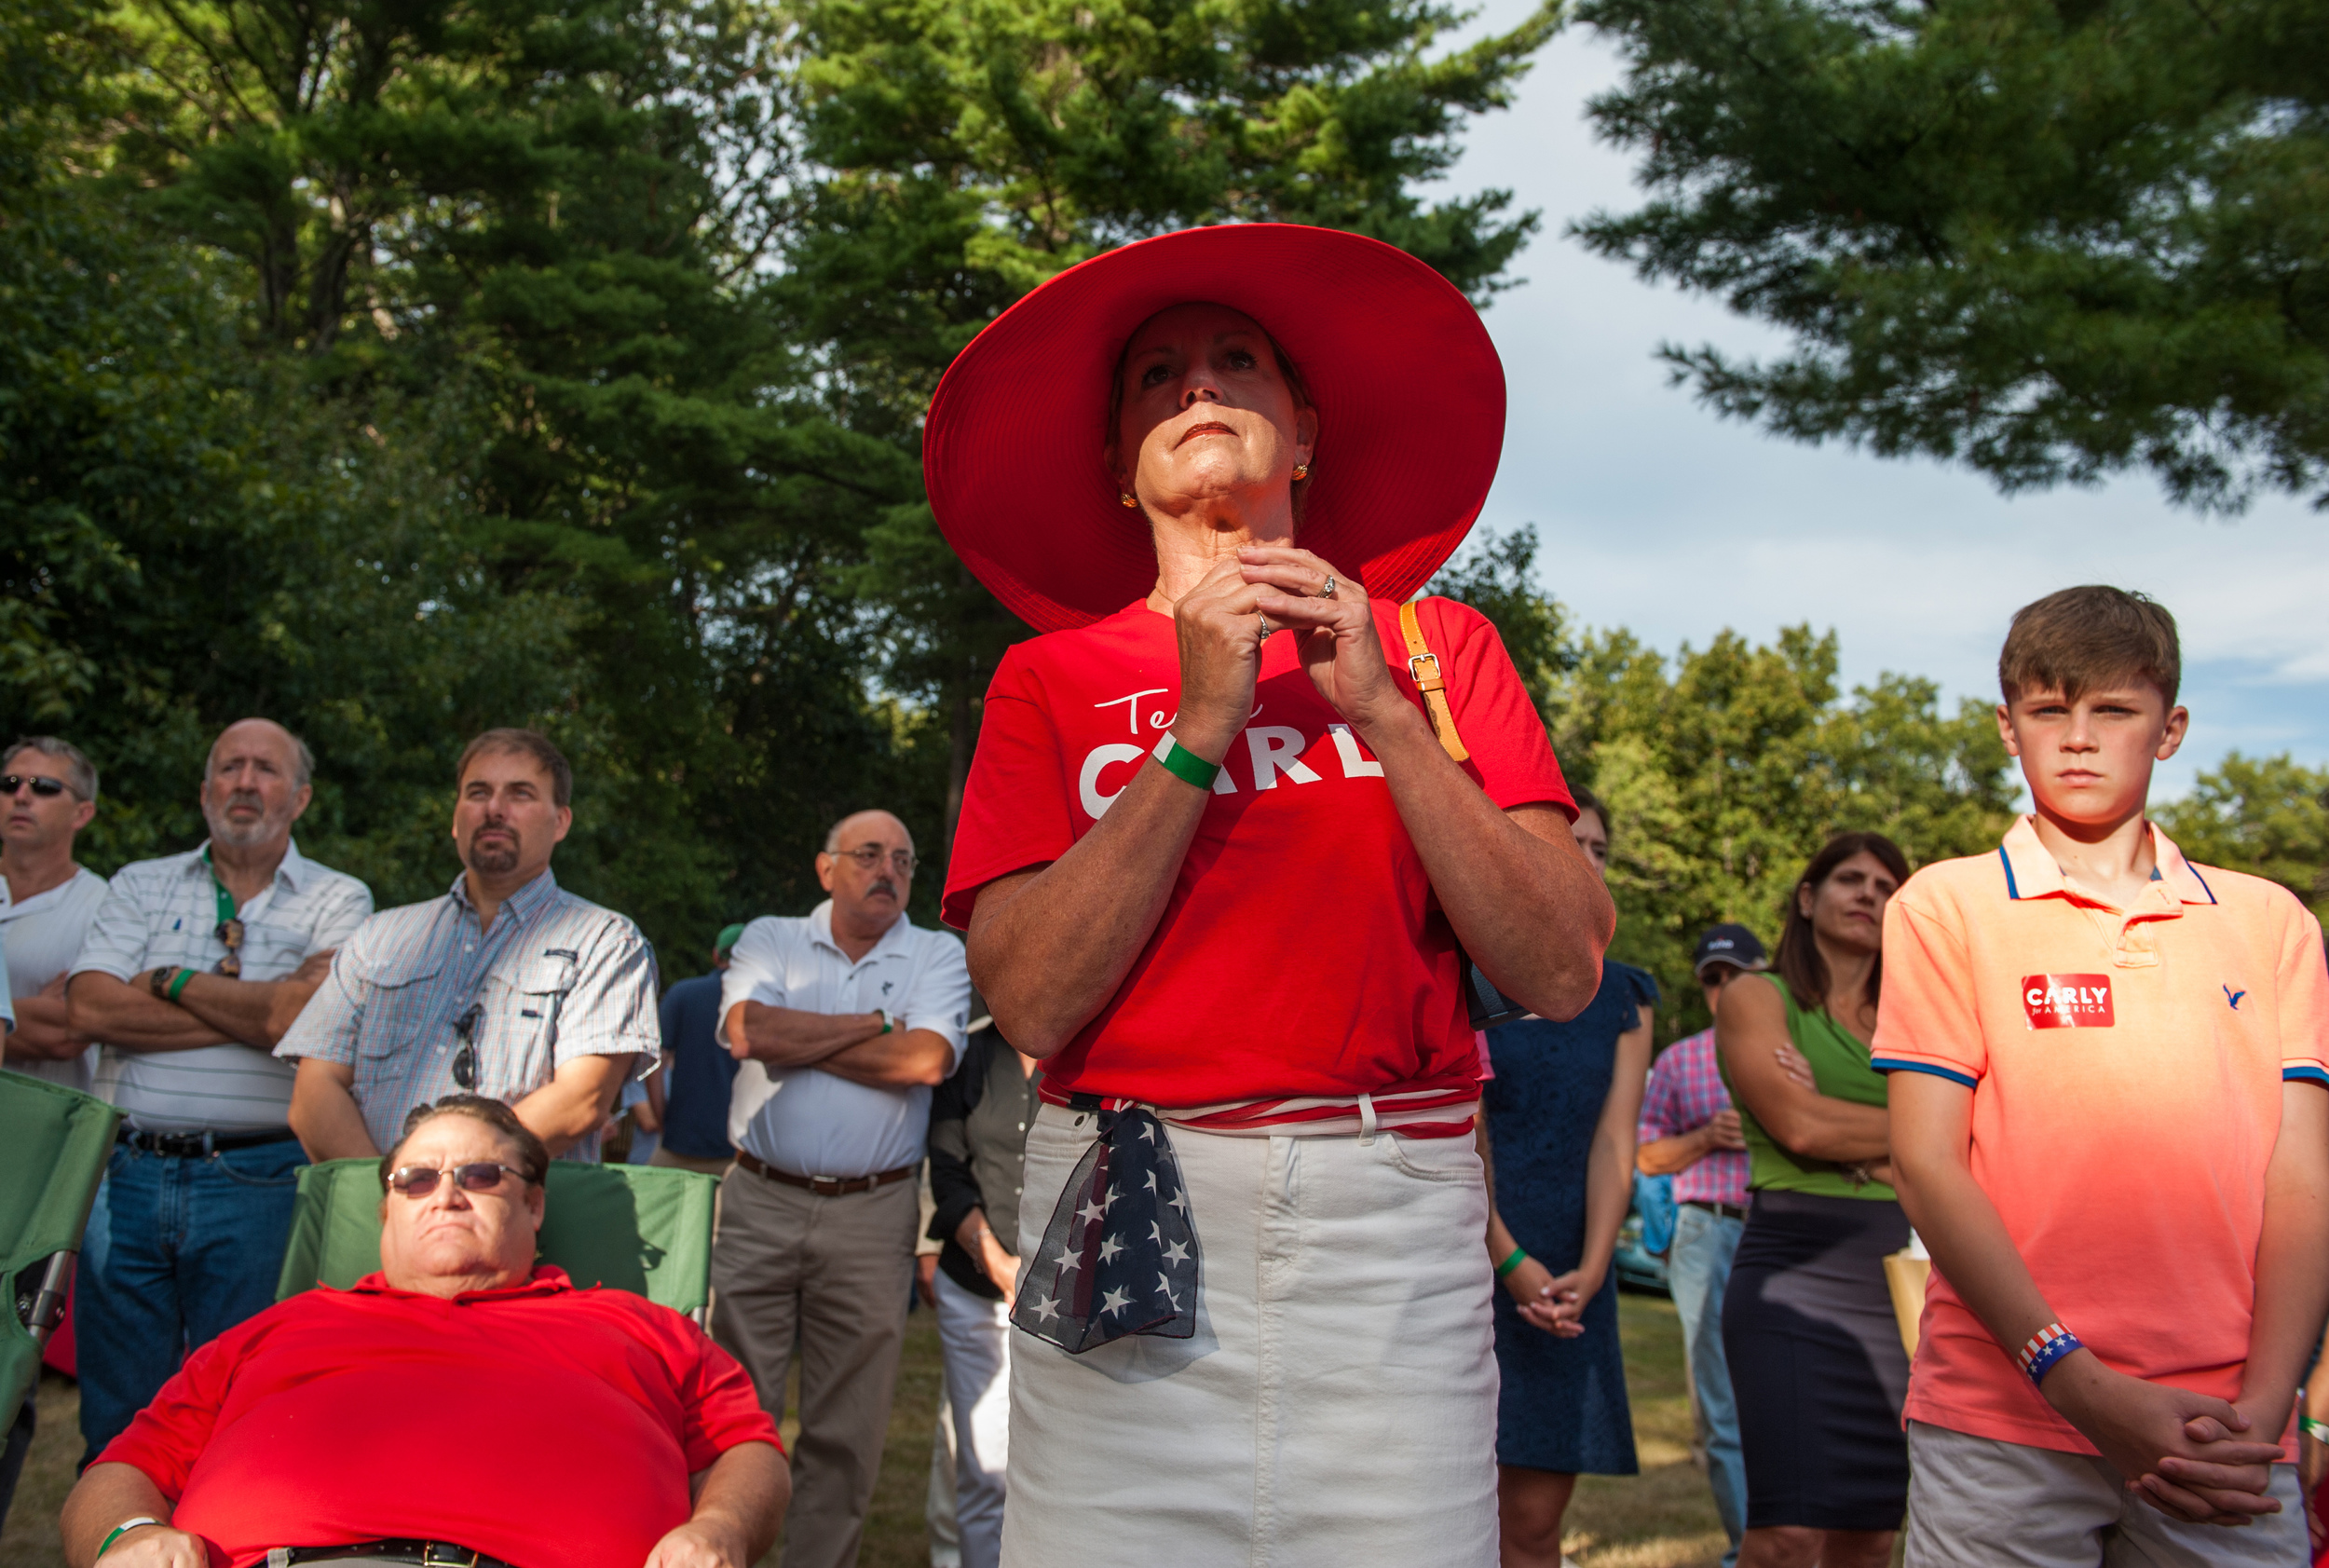 Donna Marie Everett, a Carly Fiorina supporter from Dover, watchers her candidate speak at the Stafford County GOP BBQ and Beer bash in Dover, New Hampshire Saturday, September 12, 2015. Everett says if her candidate does not win in the crowded field she would be a great cabinet member for a potential next Republican President.